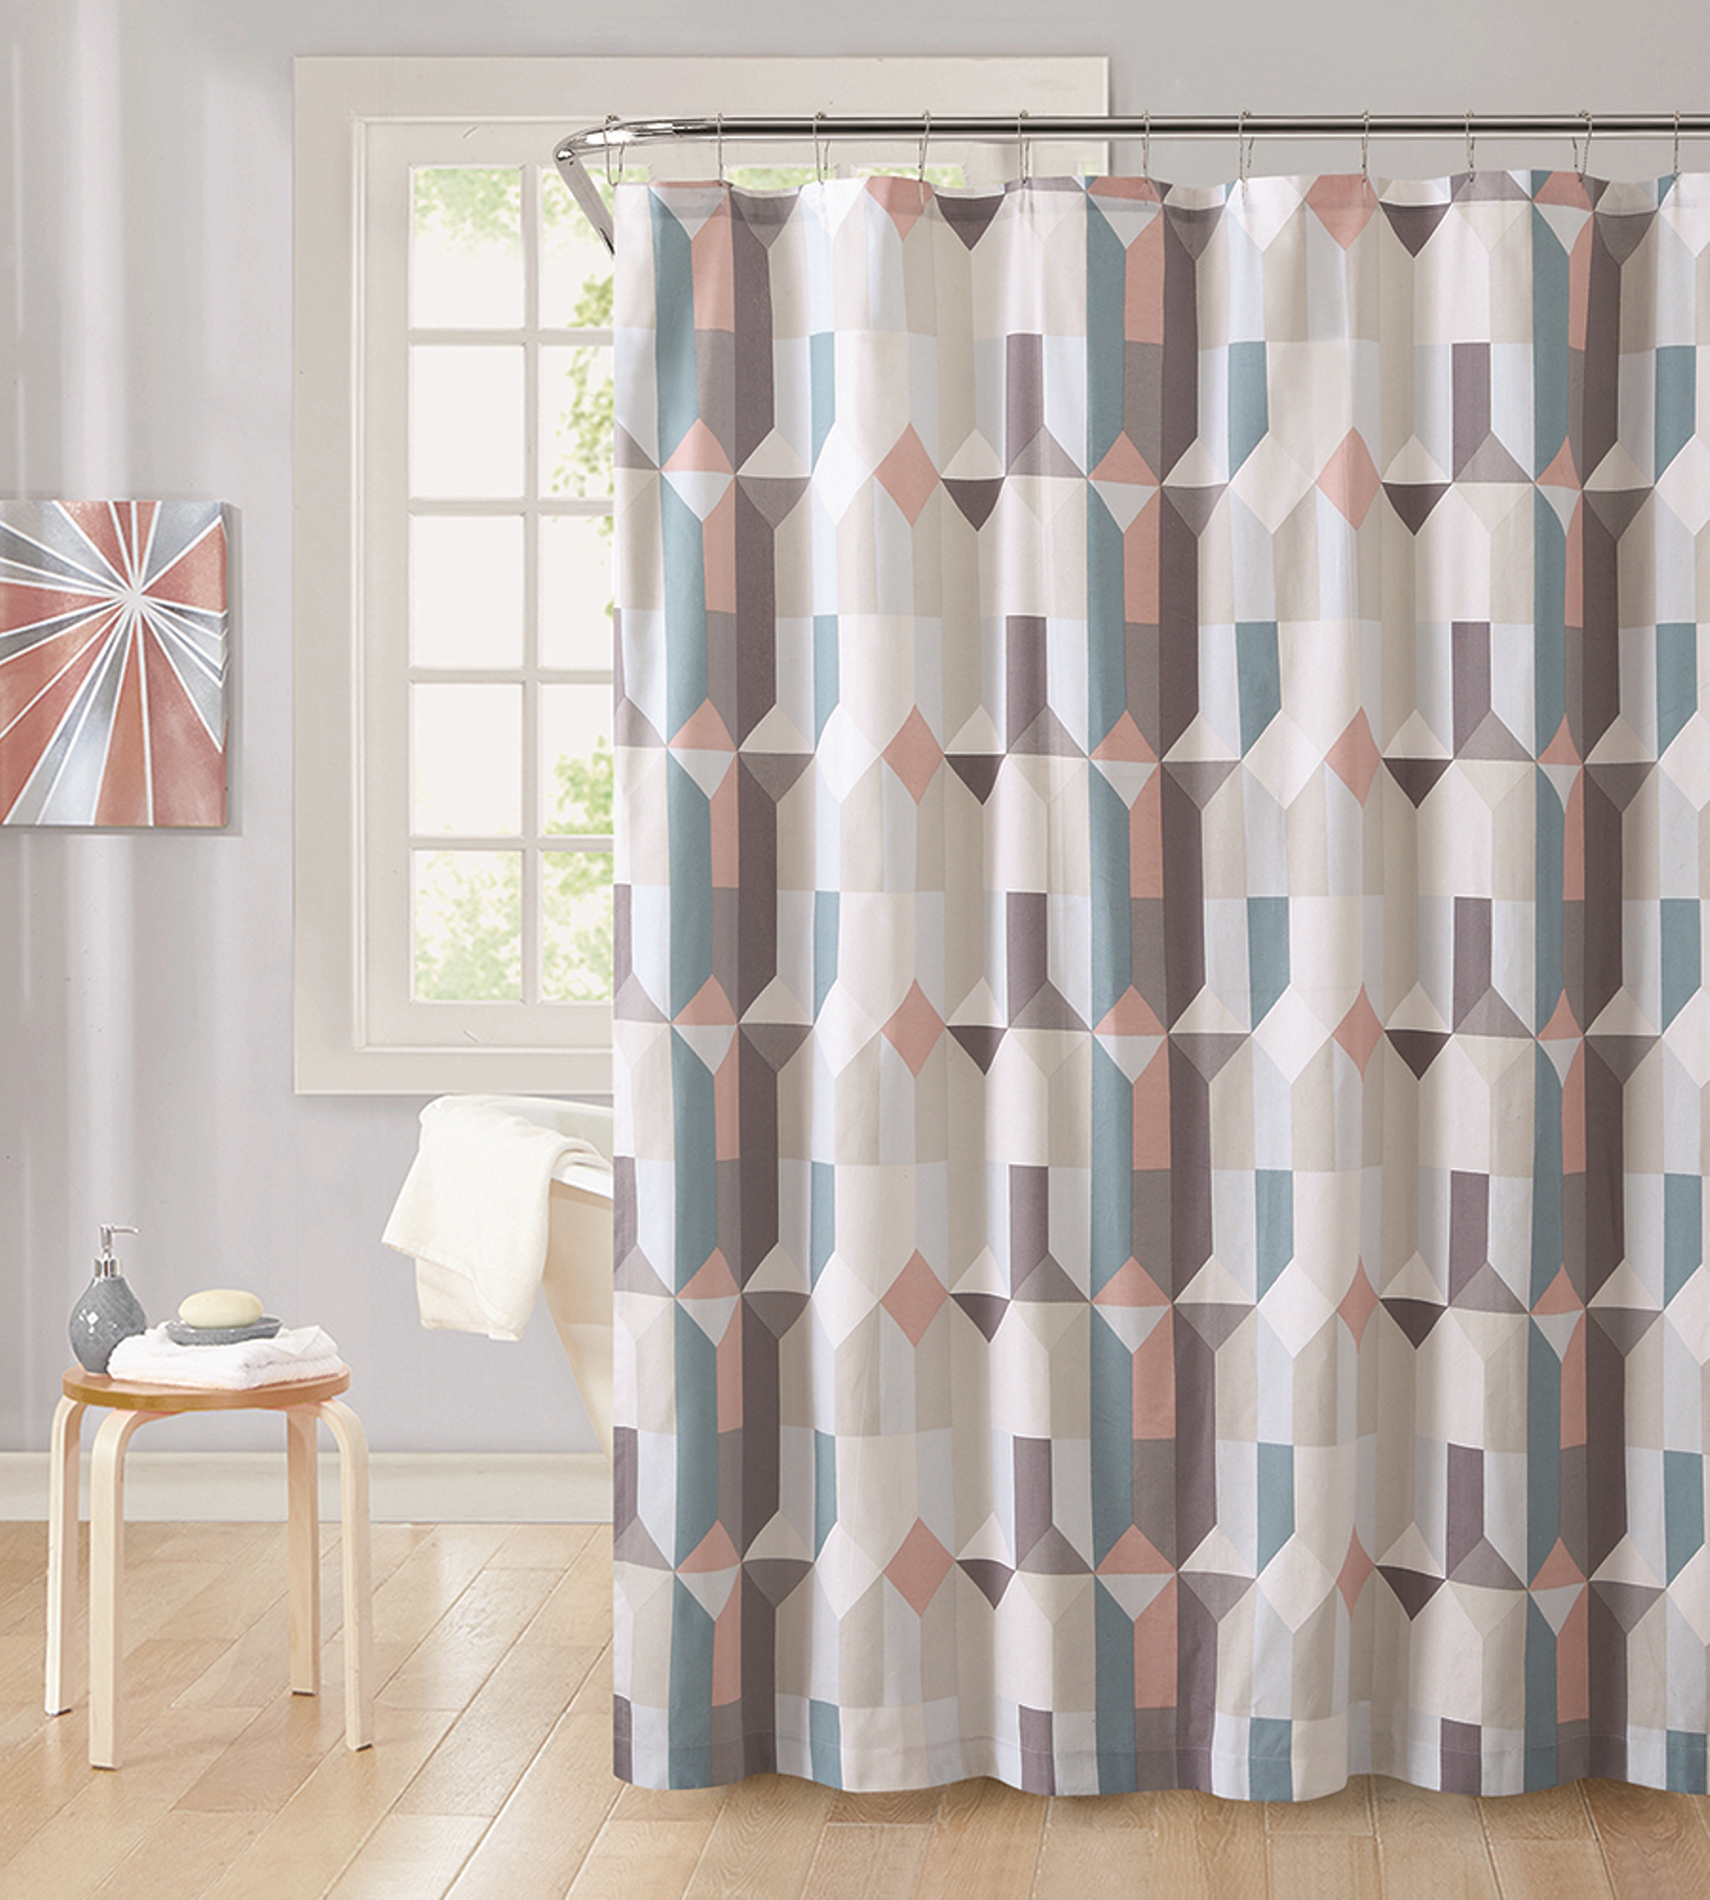 Metaphor Aspect Cotton Shower Curtain - Home Bed & Bath Curtains Vanity